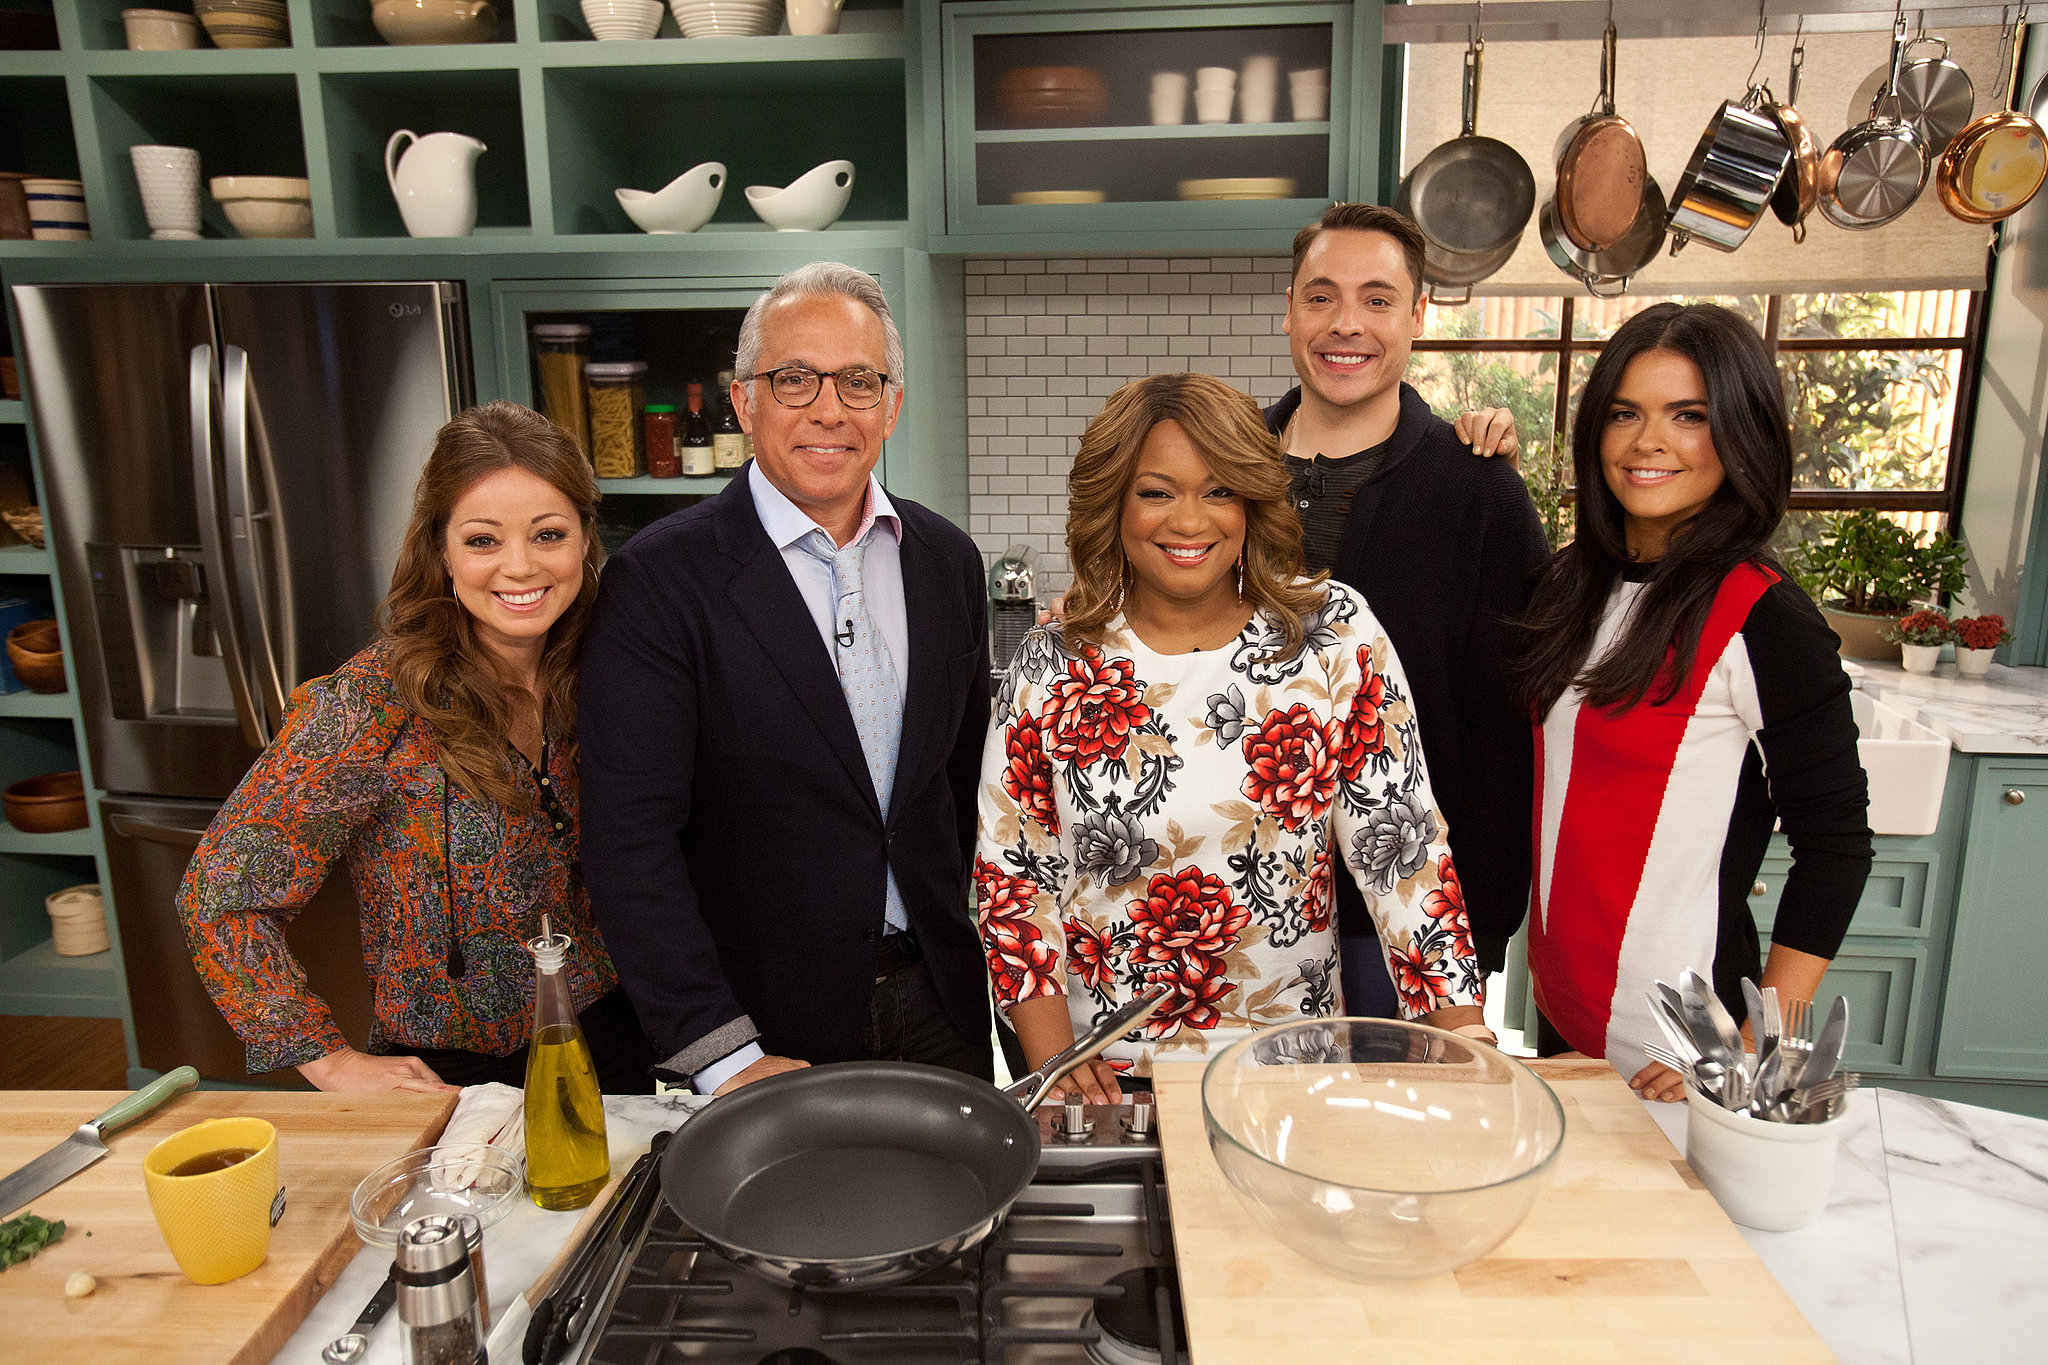 Food network 39 s the kitchen 8 can 39 t miss food picks this month popsugar food - Show picture of kitchen ...